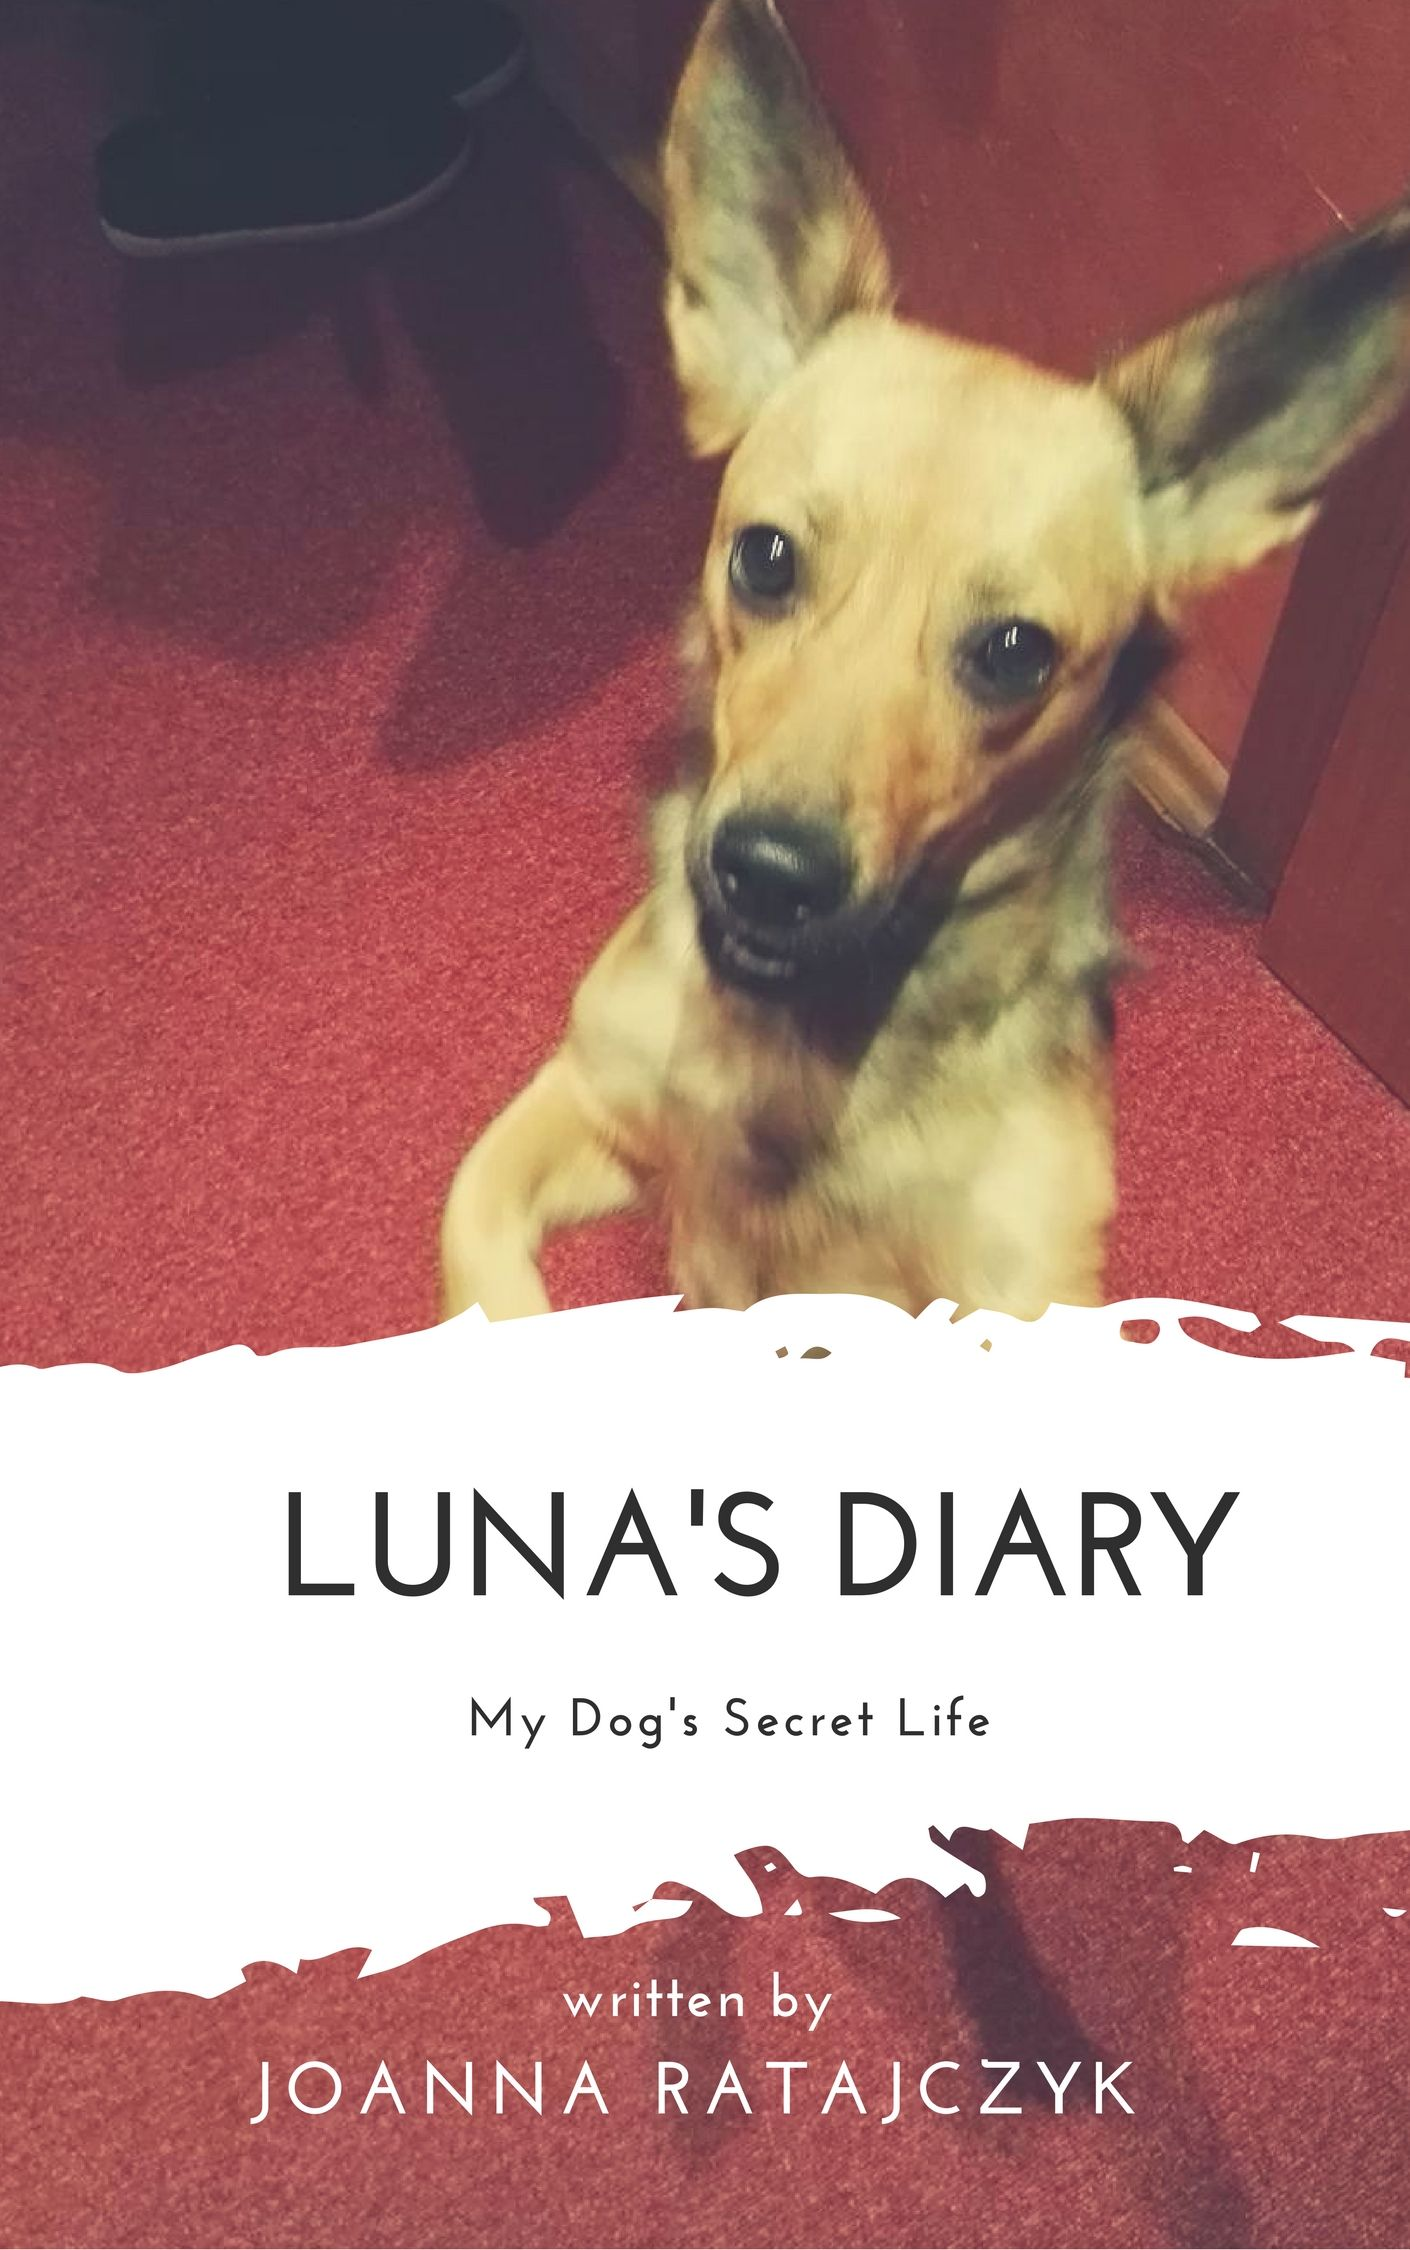 Dog's Diary My first own book! I have a pleasure to